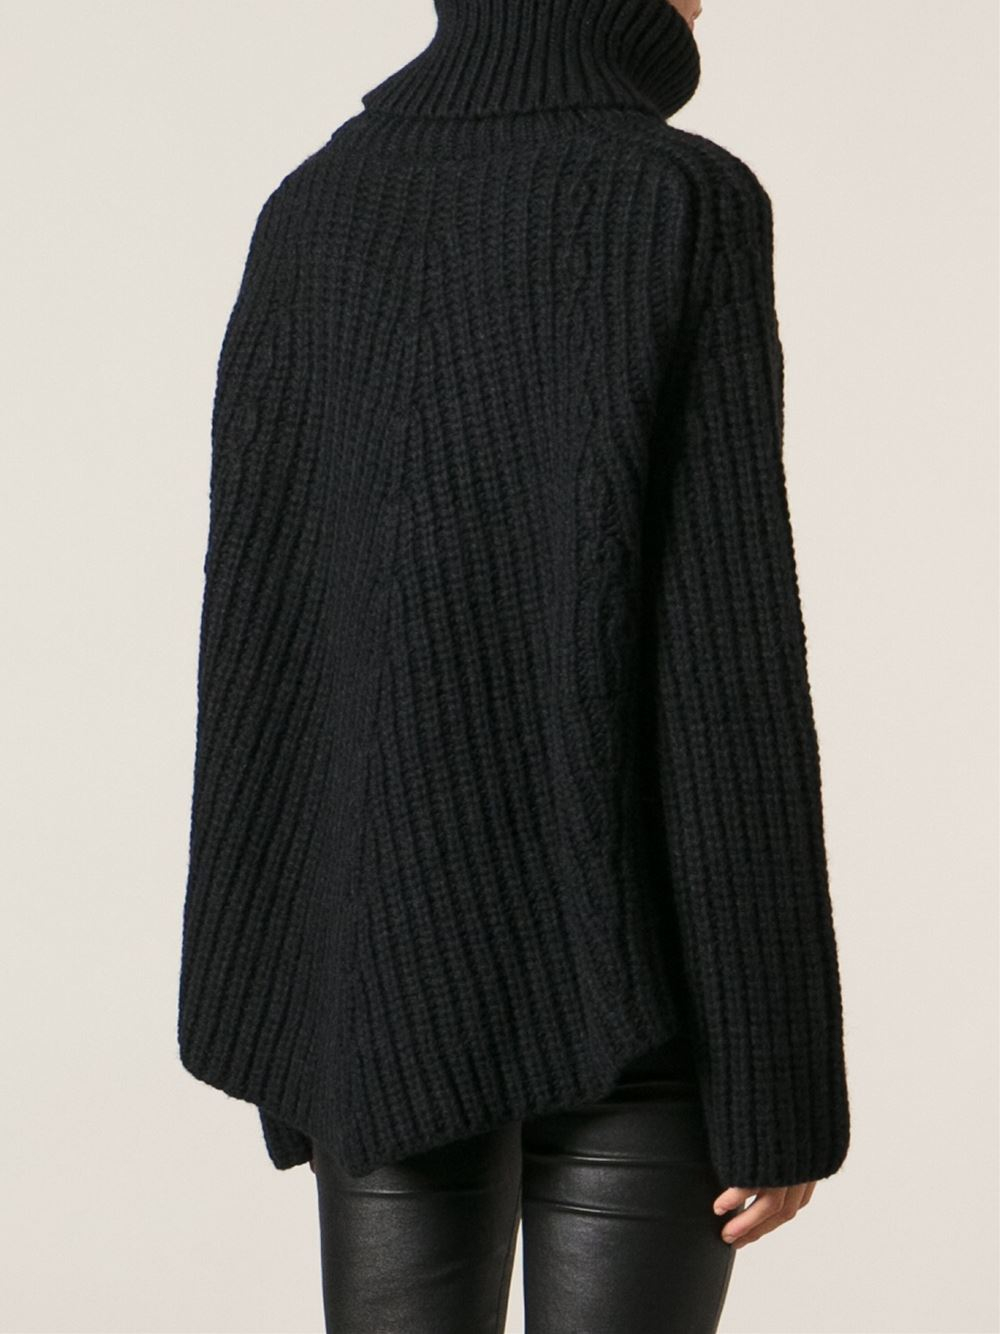 Chunky Sweater from Prada: Black Chunky Sweater with round crew neck, long sleeves, knitted details, ribbed cuffs and hem. Composition: 67% Mohair, 30% Polyamide, 3% Wool more More like this.